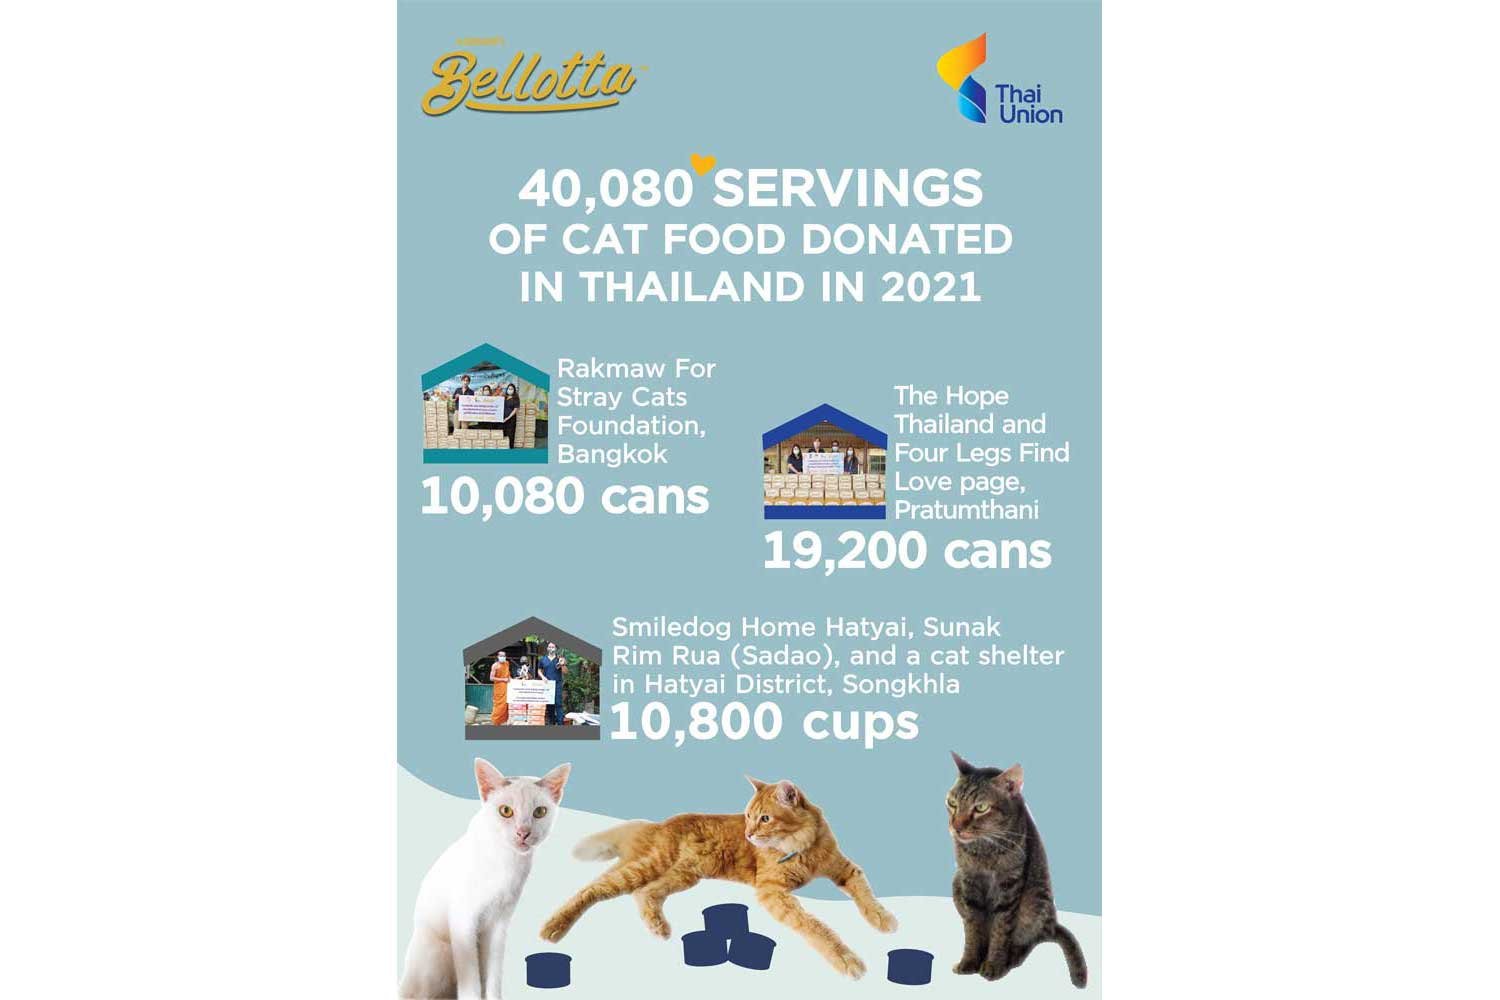 Thai Union donates 30,000 cans of Bellotta cat food to pet shelters and volunteers across Thailand